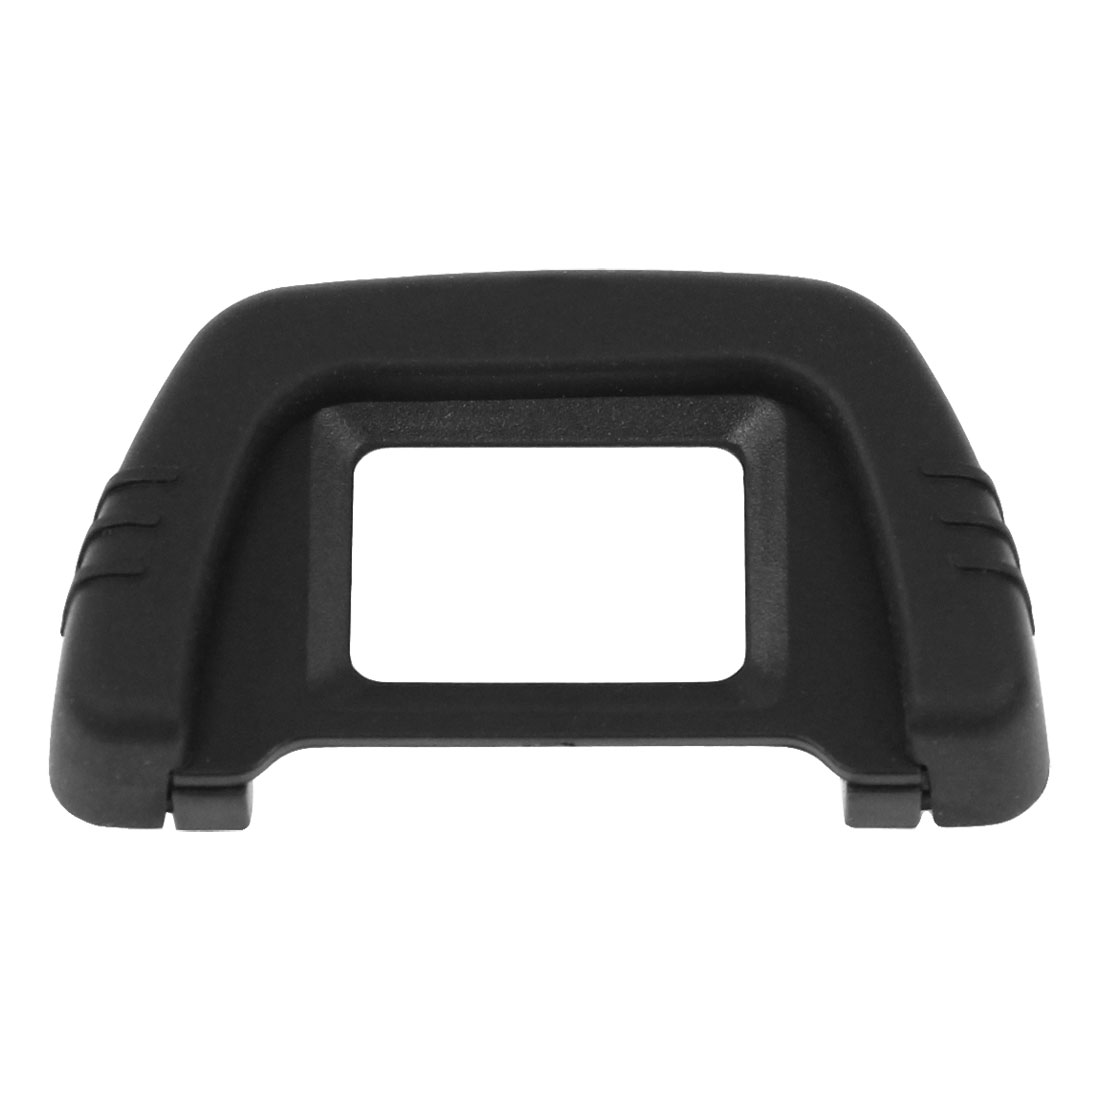 Plasitc Spare Part Camera Eye Seal Viewfinder Cover for Nikon D90 D300 Black